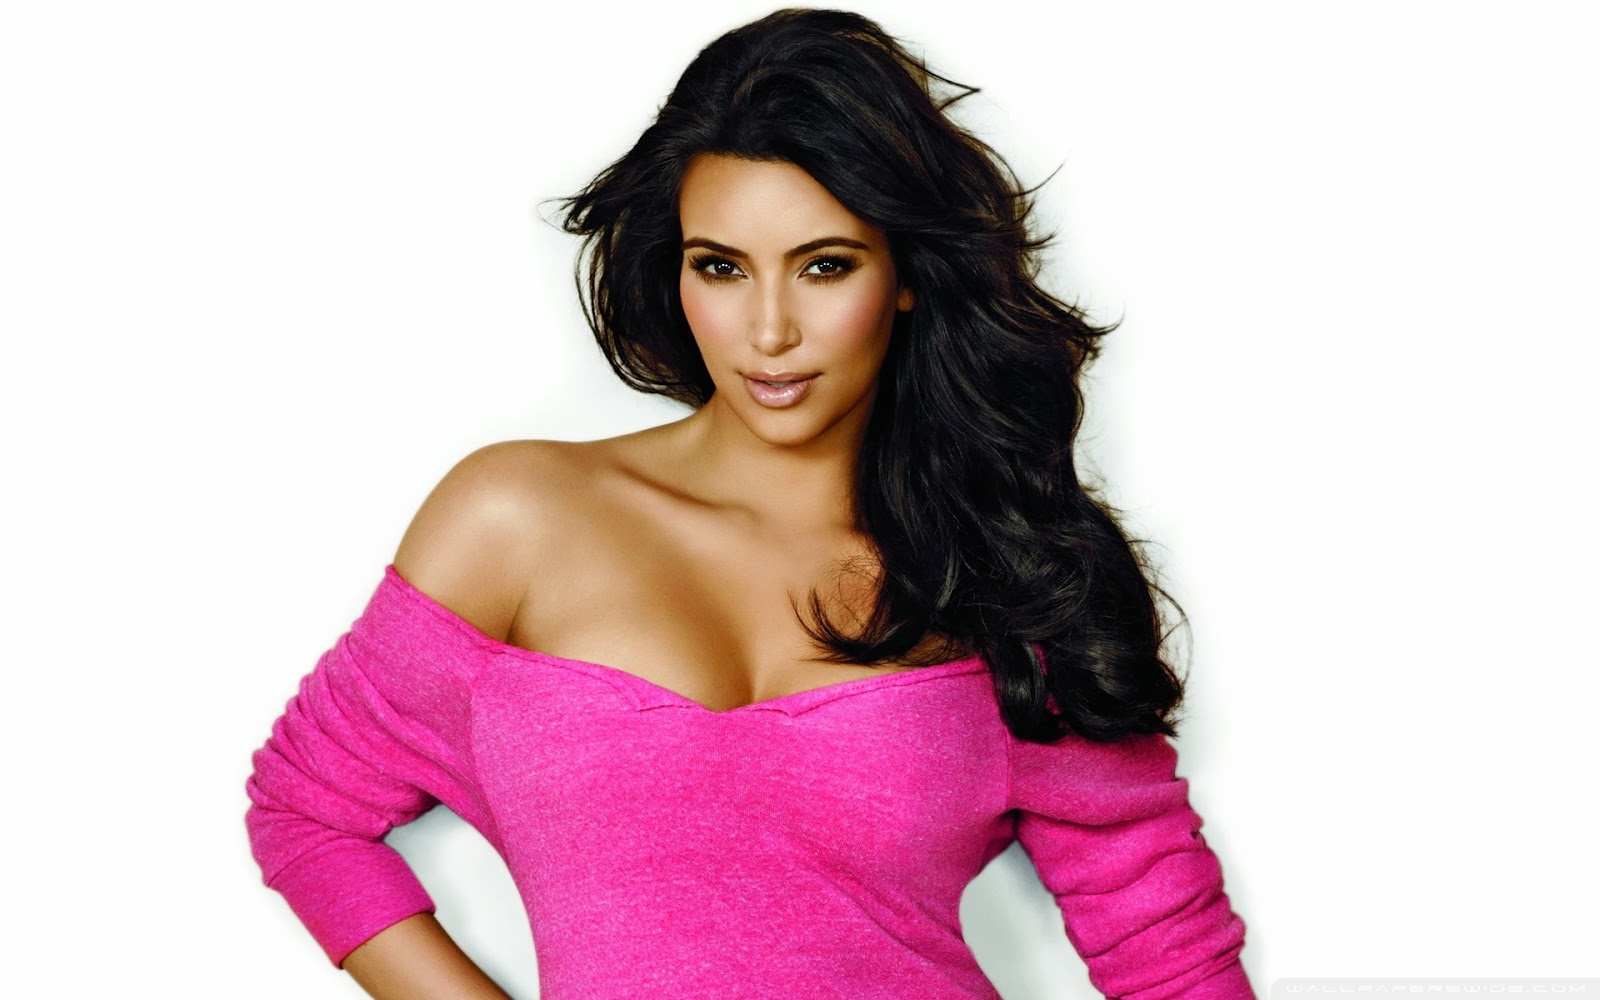 Mobile hd wallpaper kim kardashian hd wallpapers 1600x1000